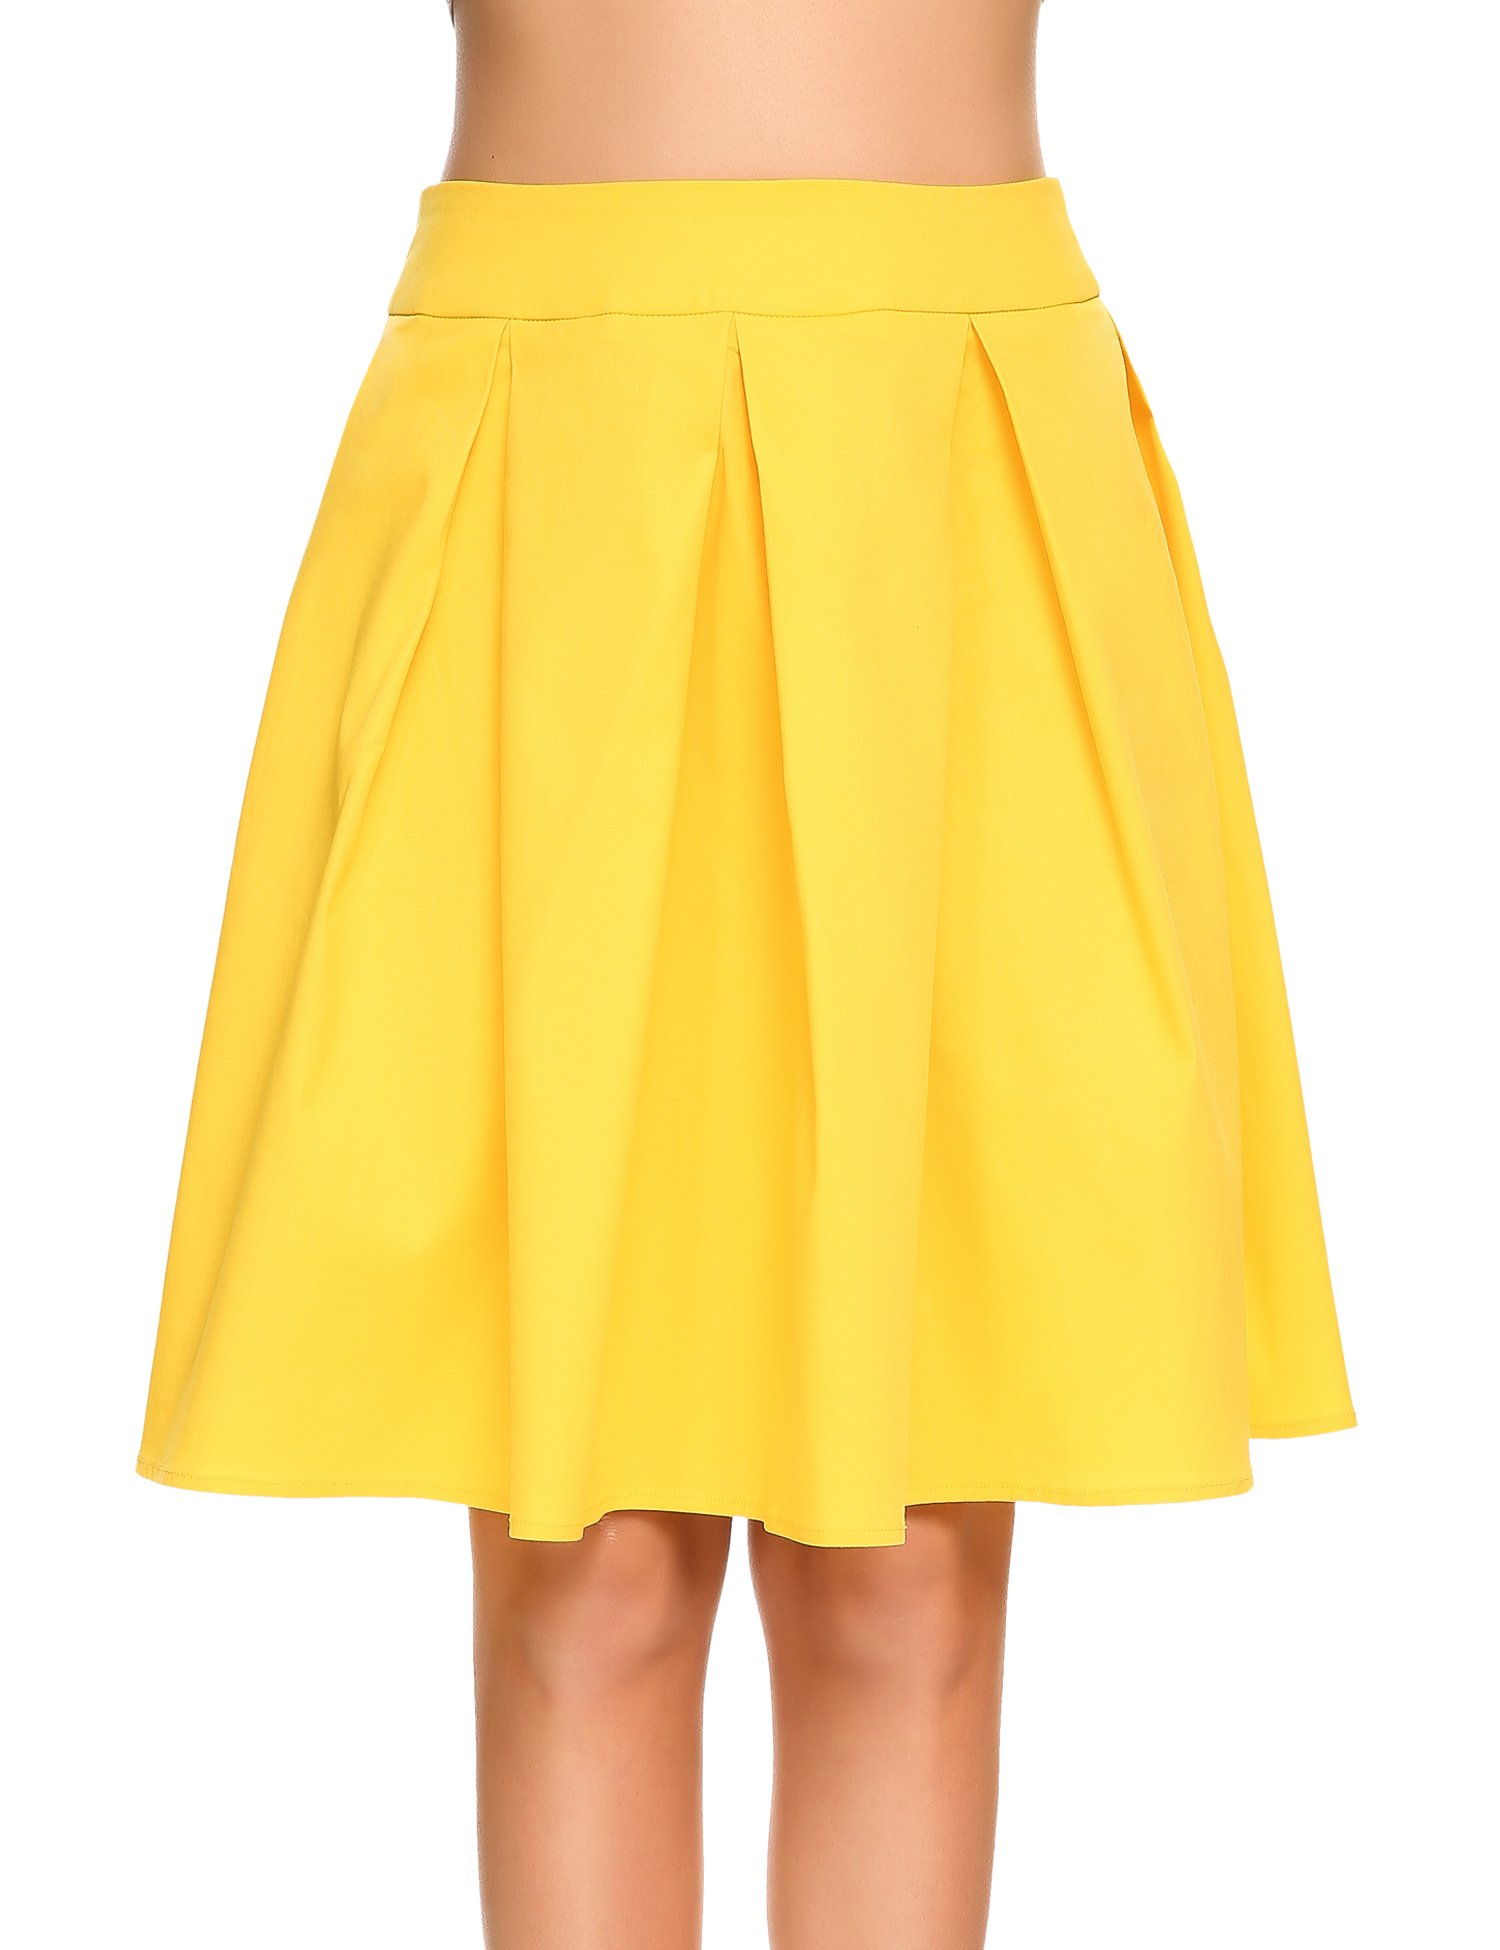 Zeagoo Women's New Vintage Style High Waist A-line Skirt Casual Party Beach Midi Skirt Yellow Large